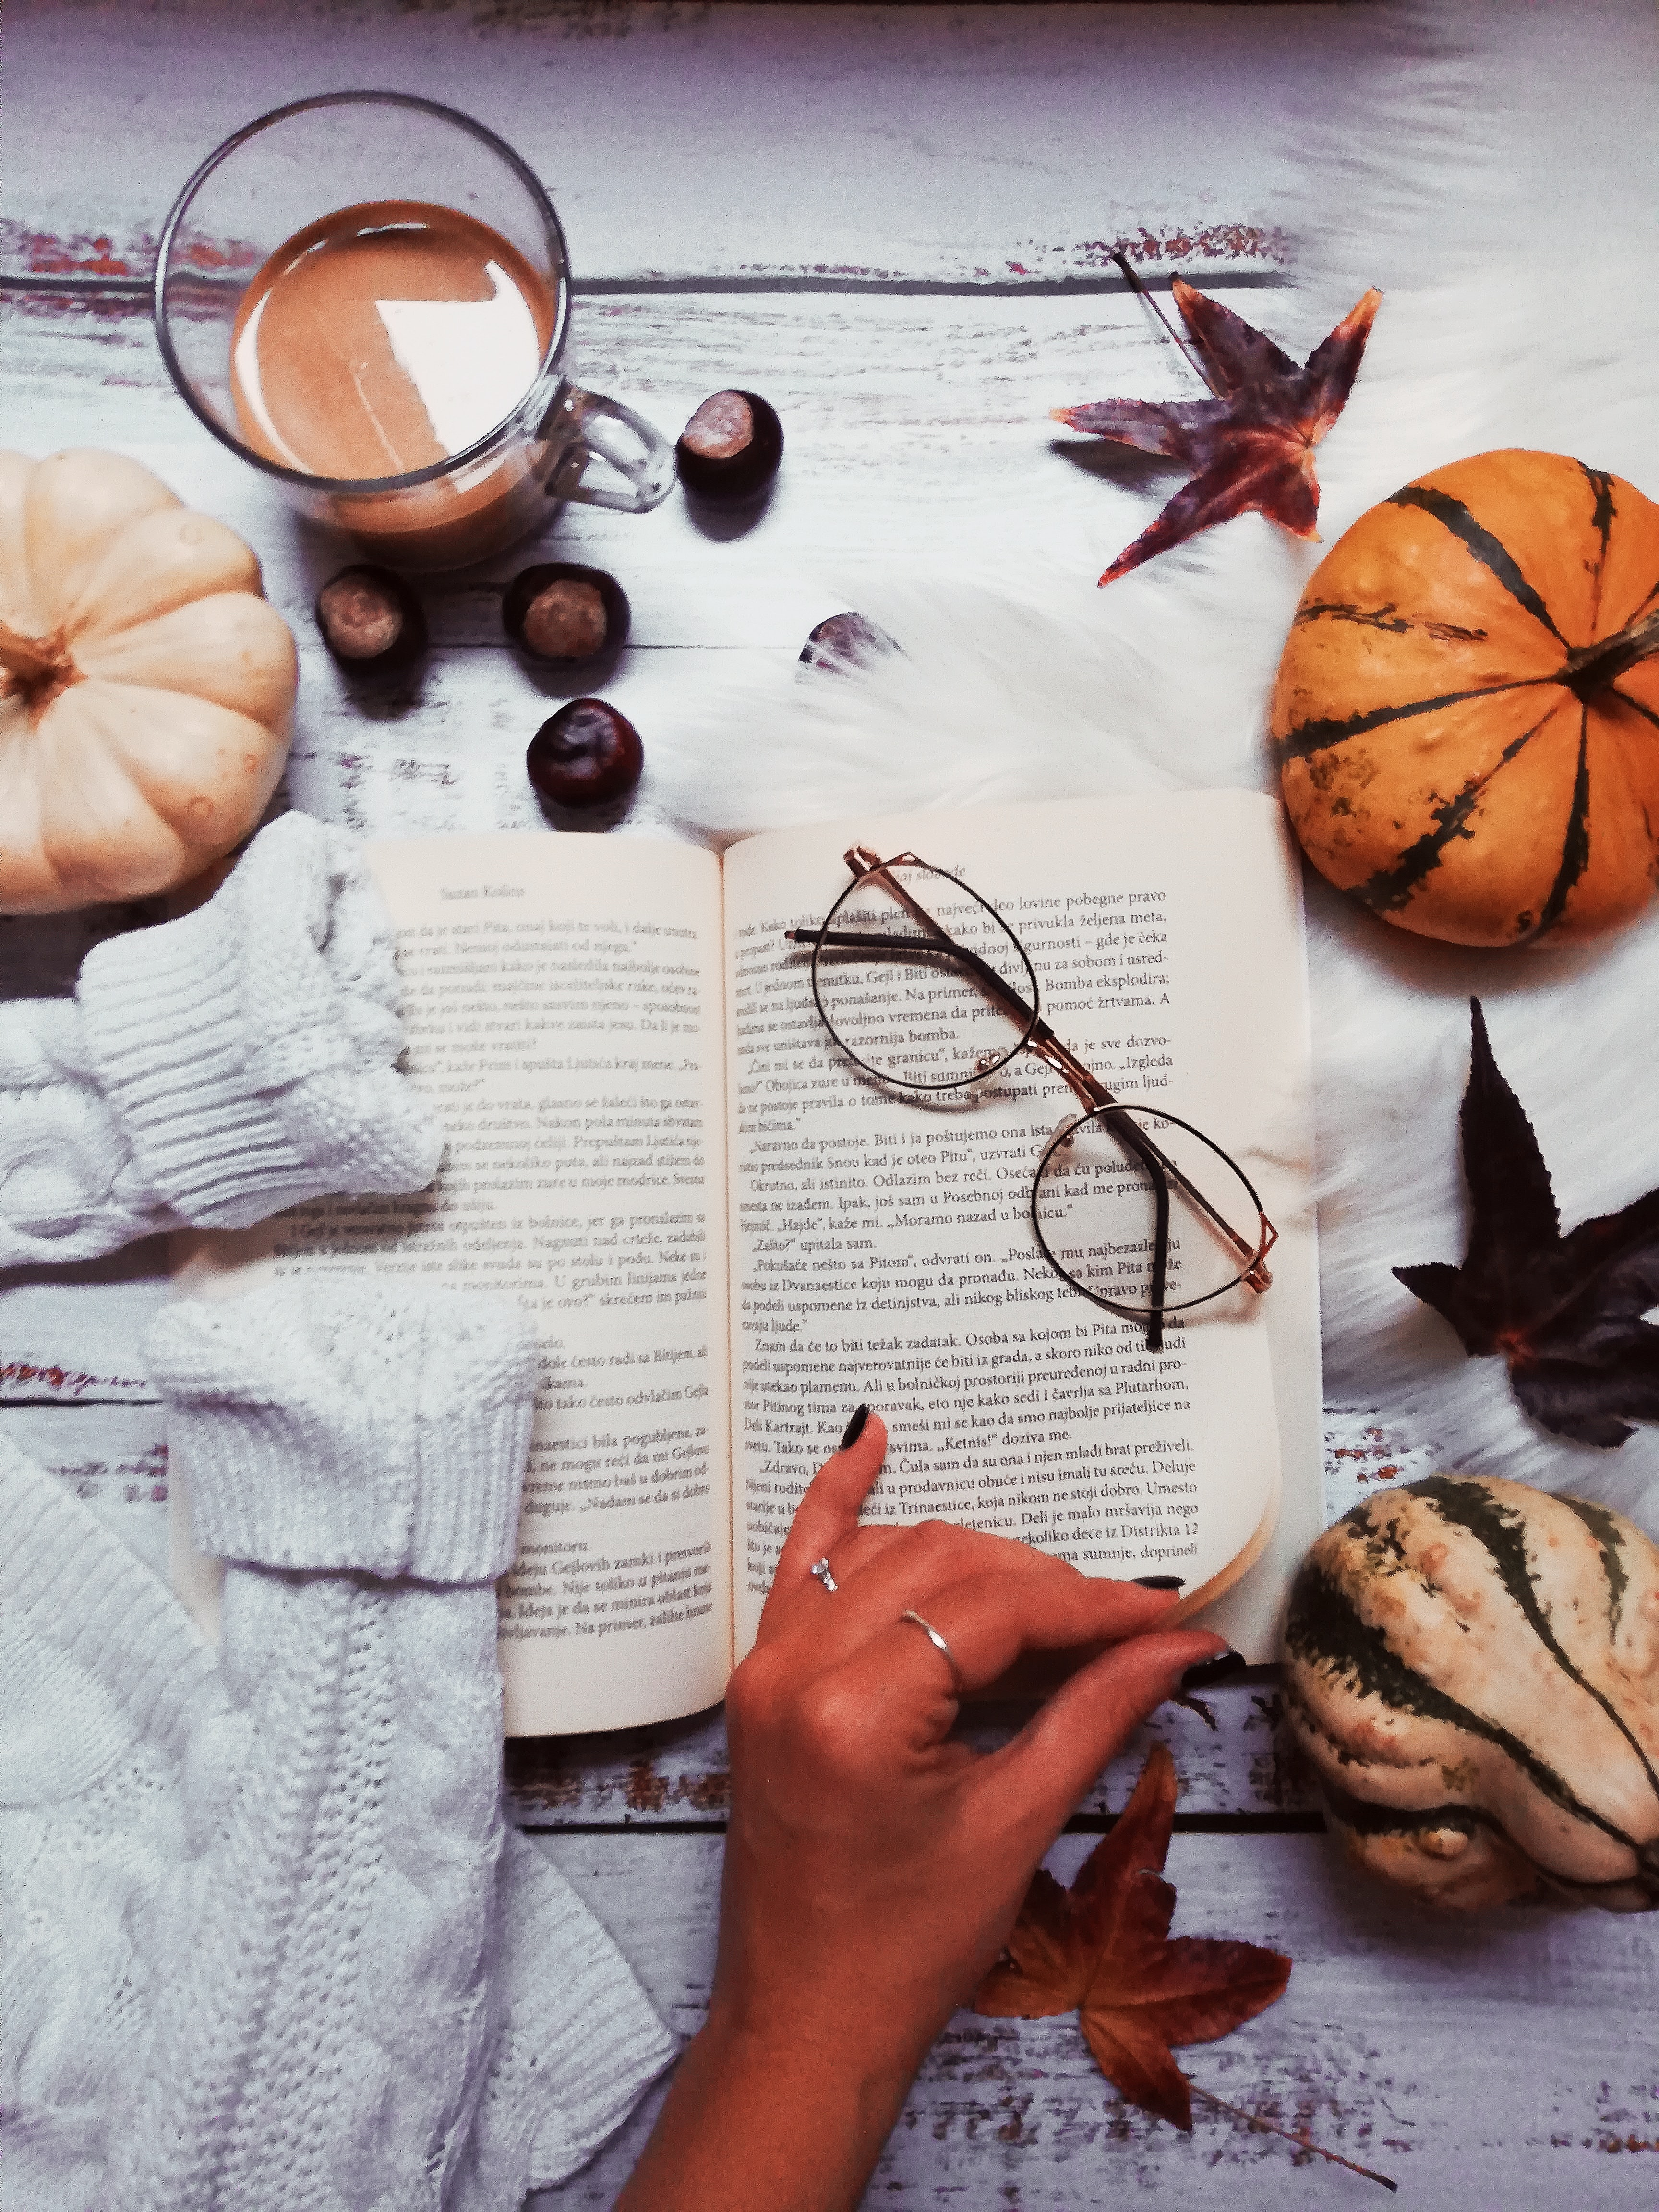 113241 download wallpaper Miscellanea, Miscellaneous, Book, Glasses, Spectacles, Coffee, Hand screensavers and pictures for free